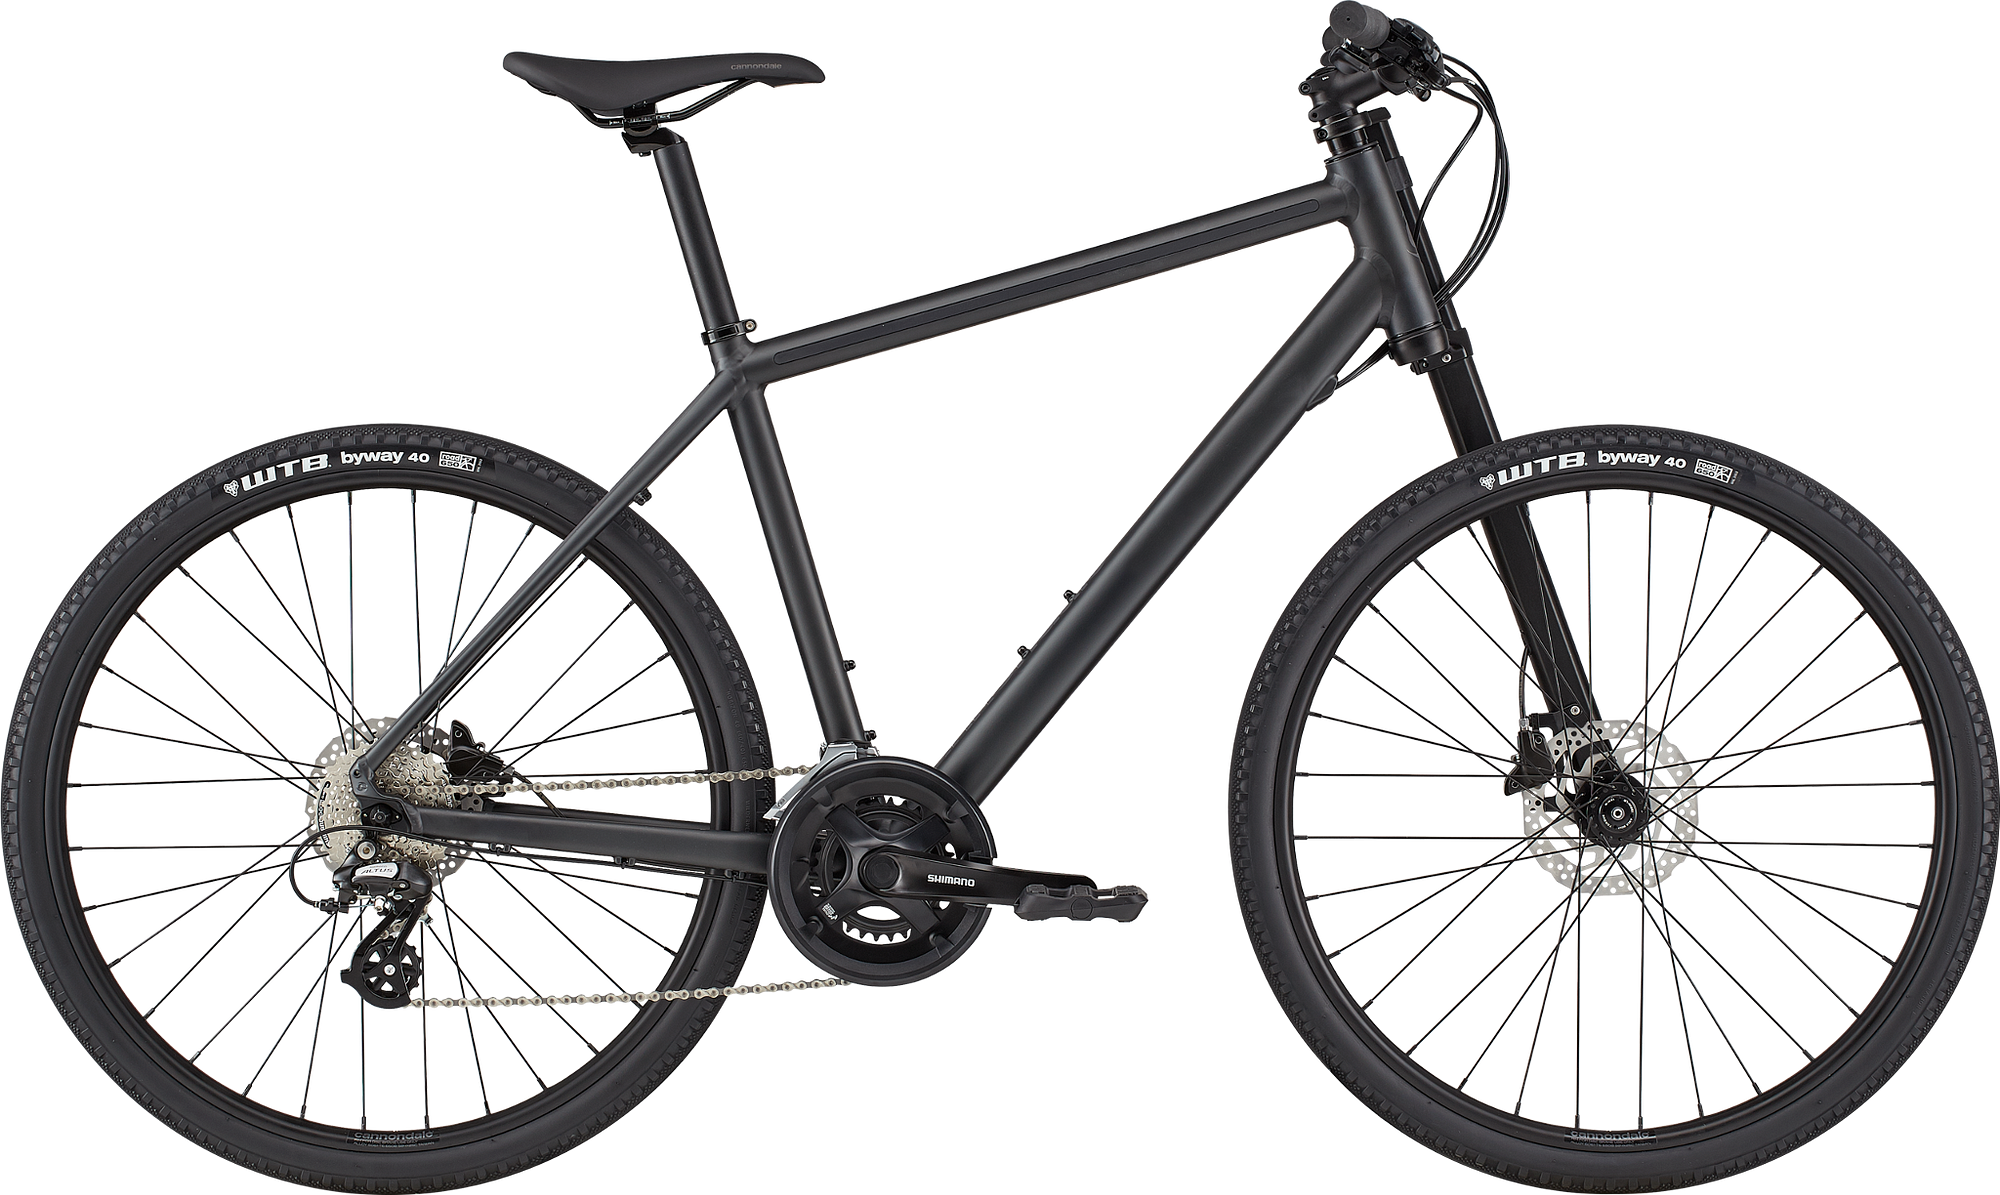 Training Option – Cannondale Bad Boy 3